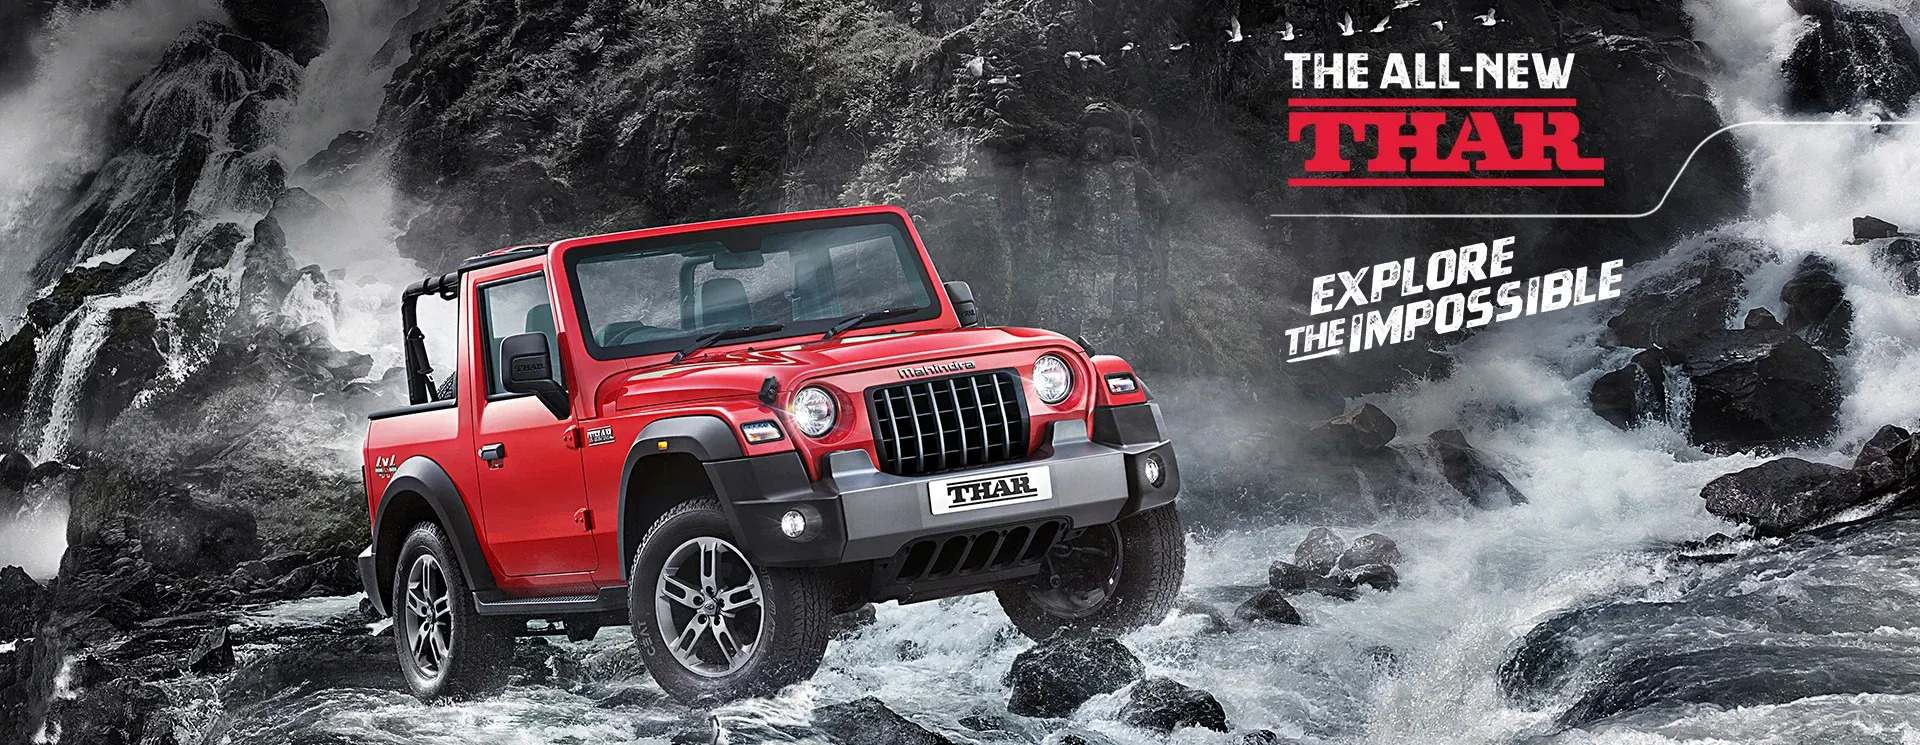 It was recently when our very own home-grown carmaker Mahindra revealed the 2020 version of the brand's most iconic off-roader the next-gen Mahindra